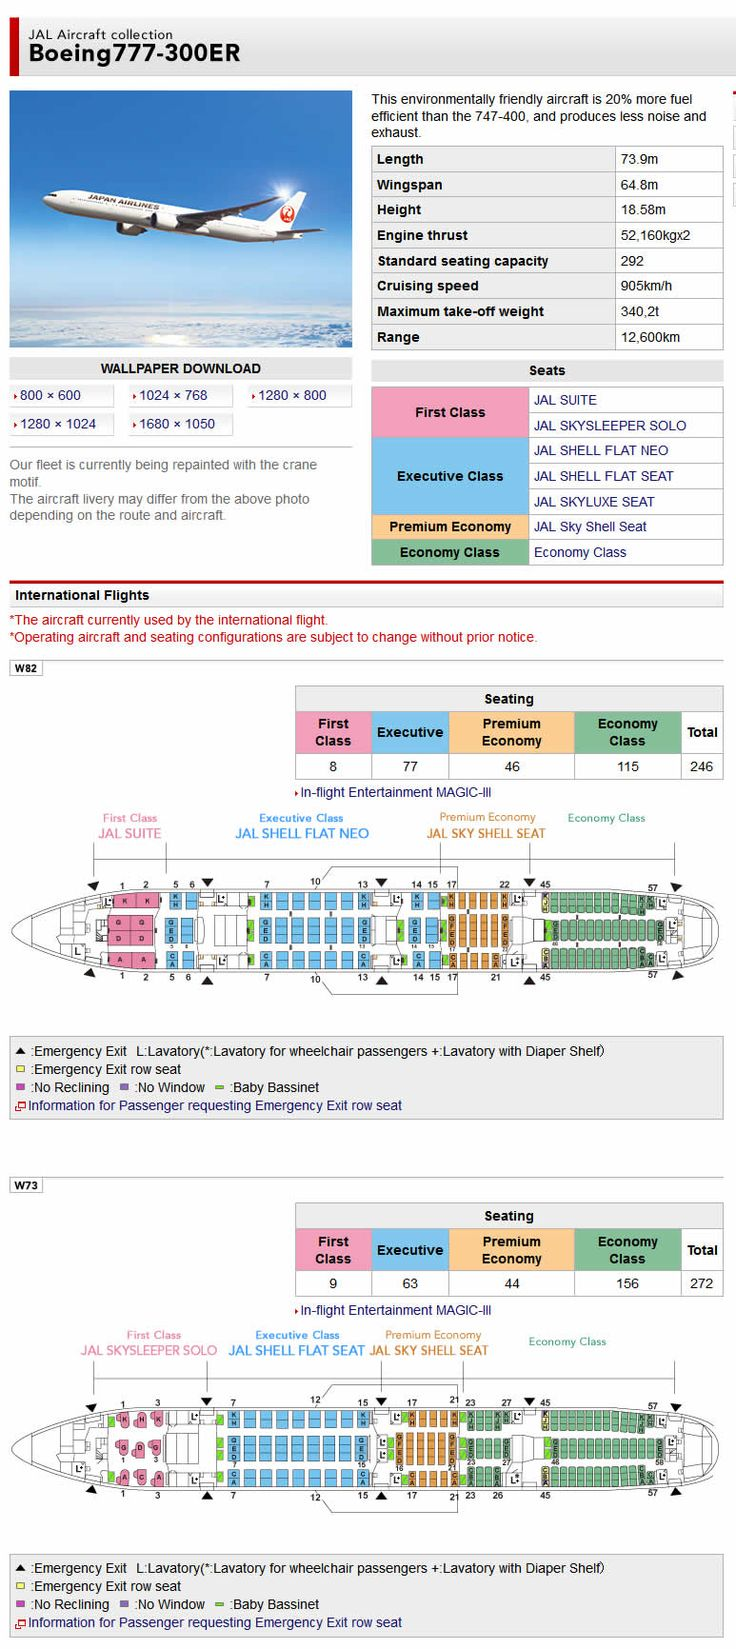 Best Boeing Er Seating Ideas On Pinterest Boeing - Japan airlines seat map 773